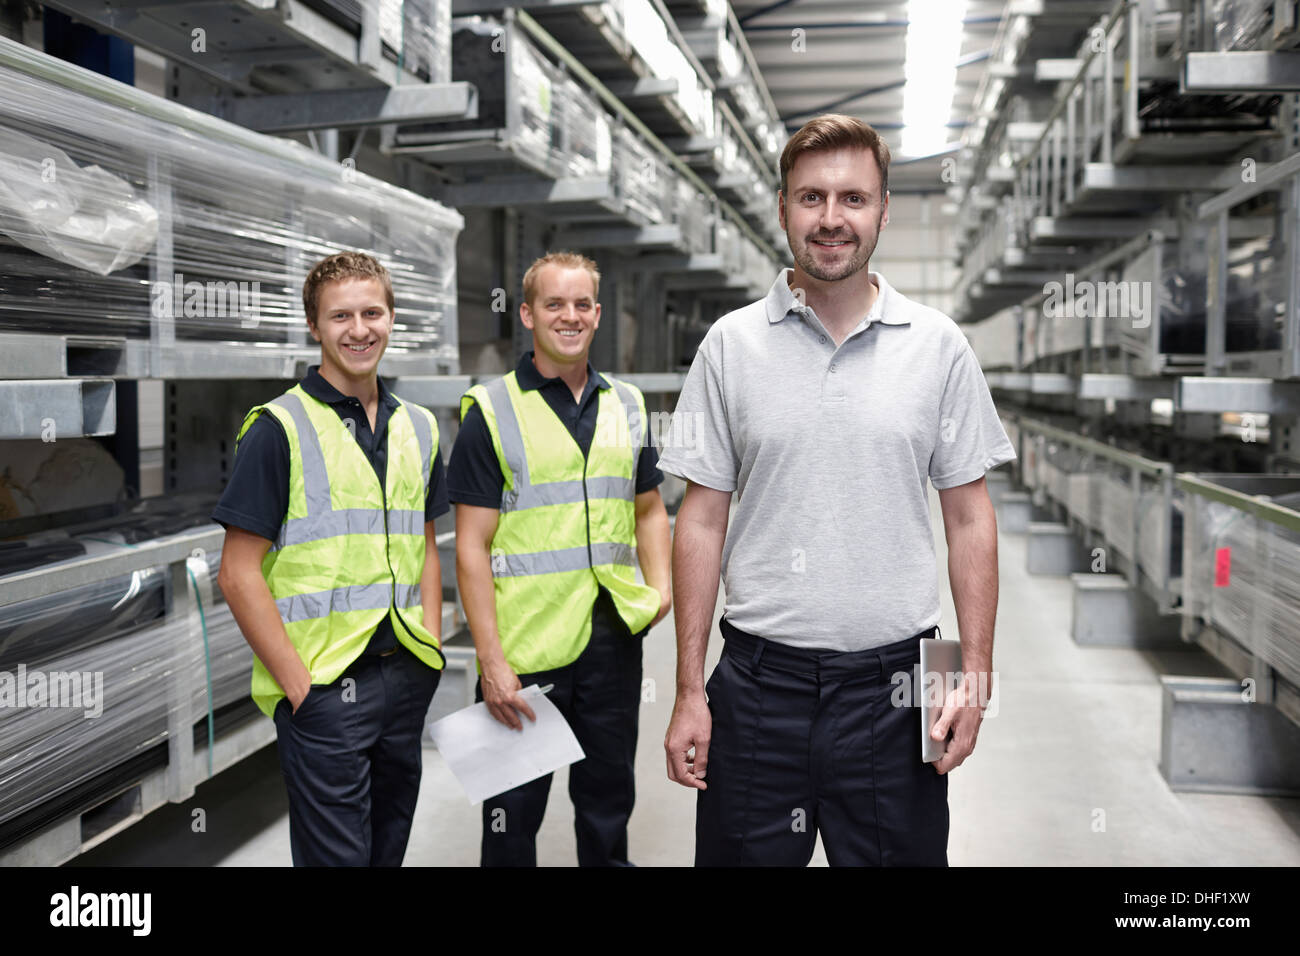 Portrait of three workers in engineering warehouse - Stock Image